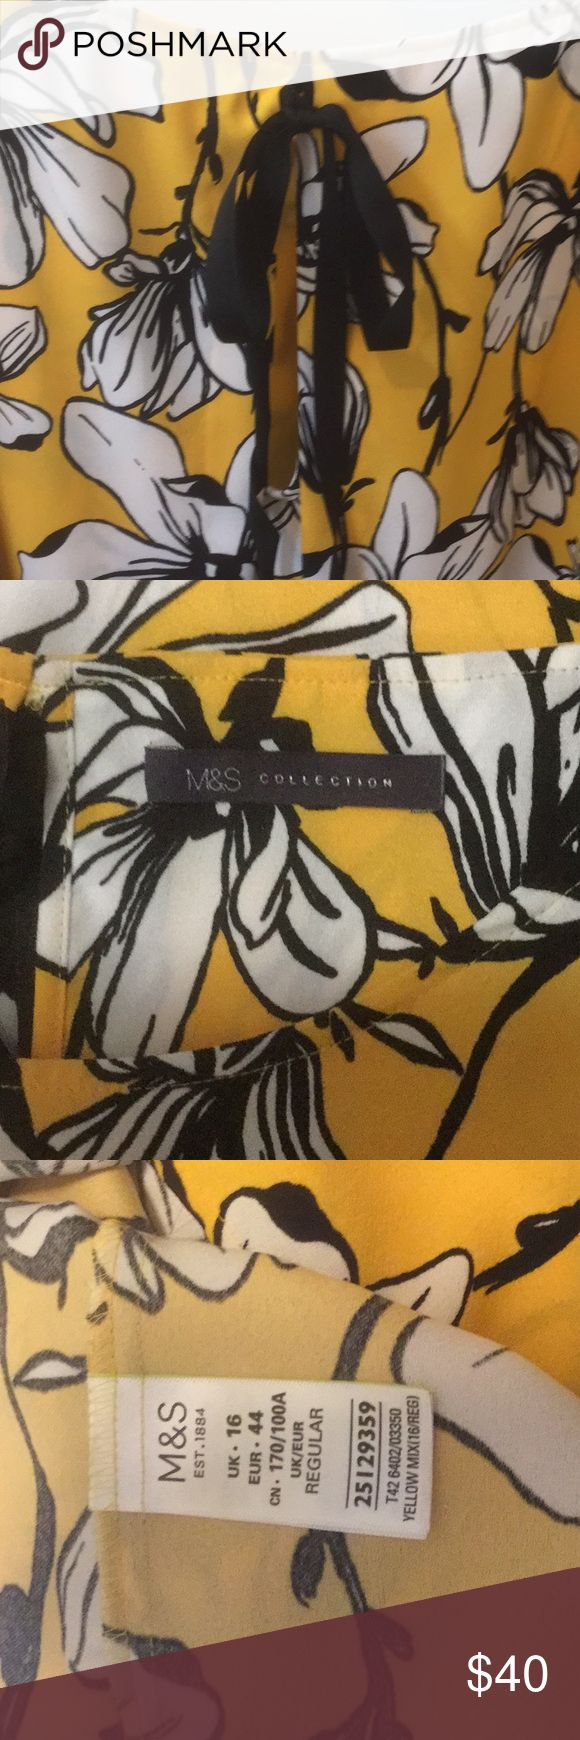 Marks and Spencer Dress Floral Print Double Layered Shift Dress Cotton Rich Flared   Yellow dress with white flowers and black boarders.  Cute bow in back.  Very comfy dress wore one time. I'm 5'5 it hit right above my knee. Marks & Spencer Dresses Midi